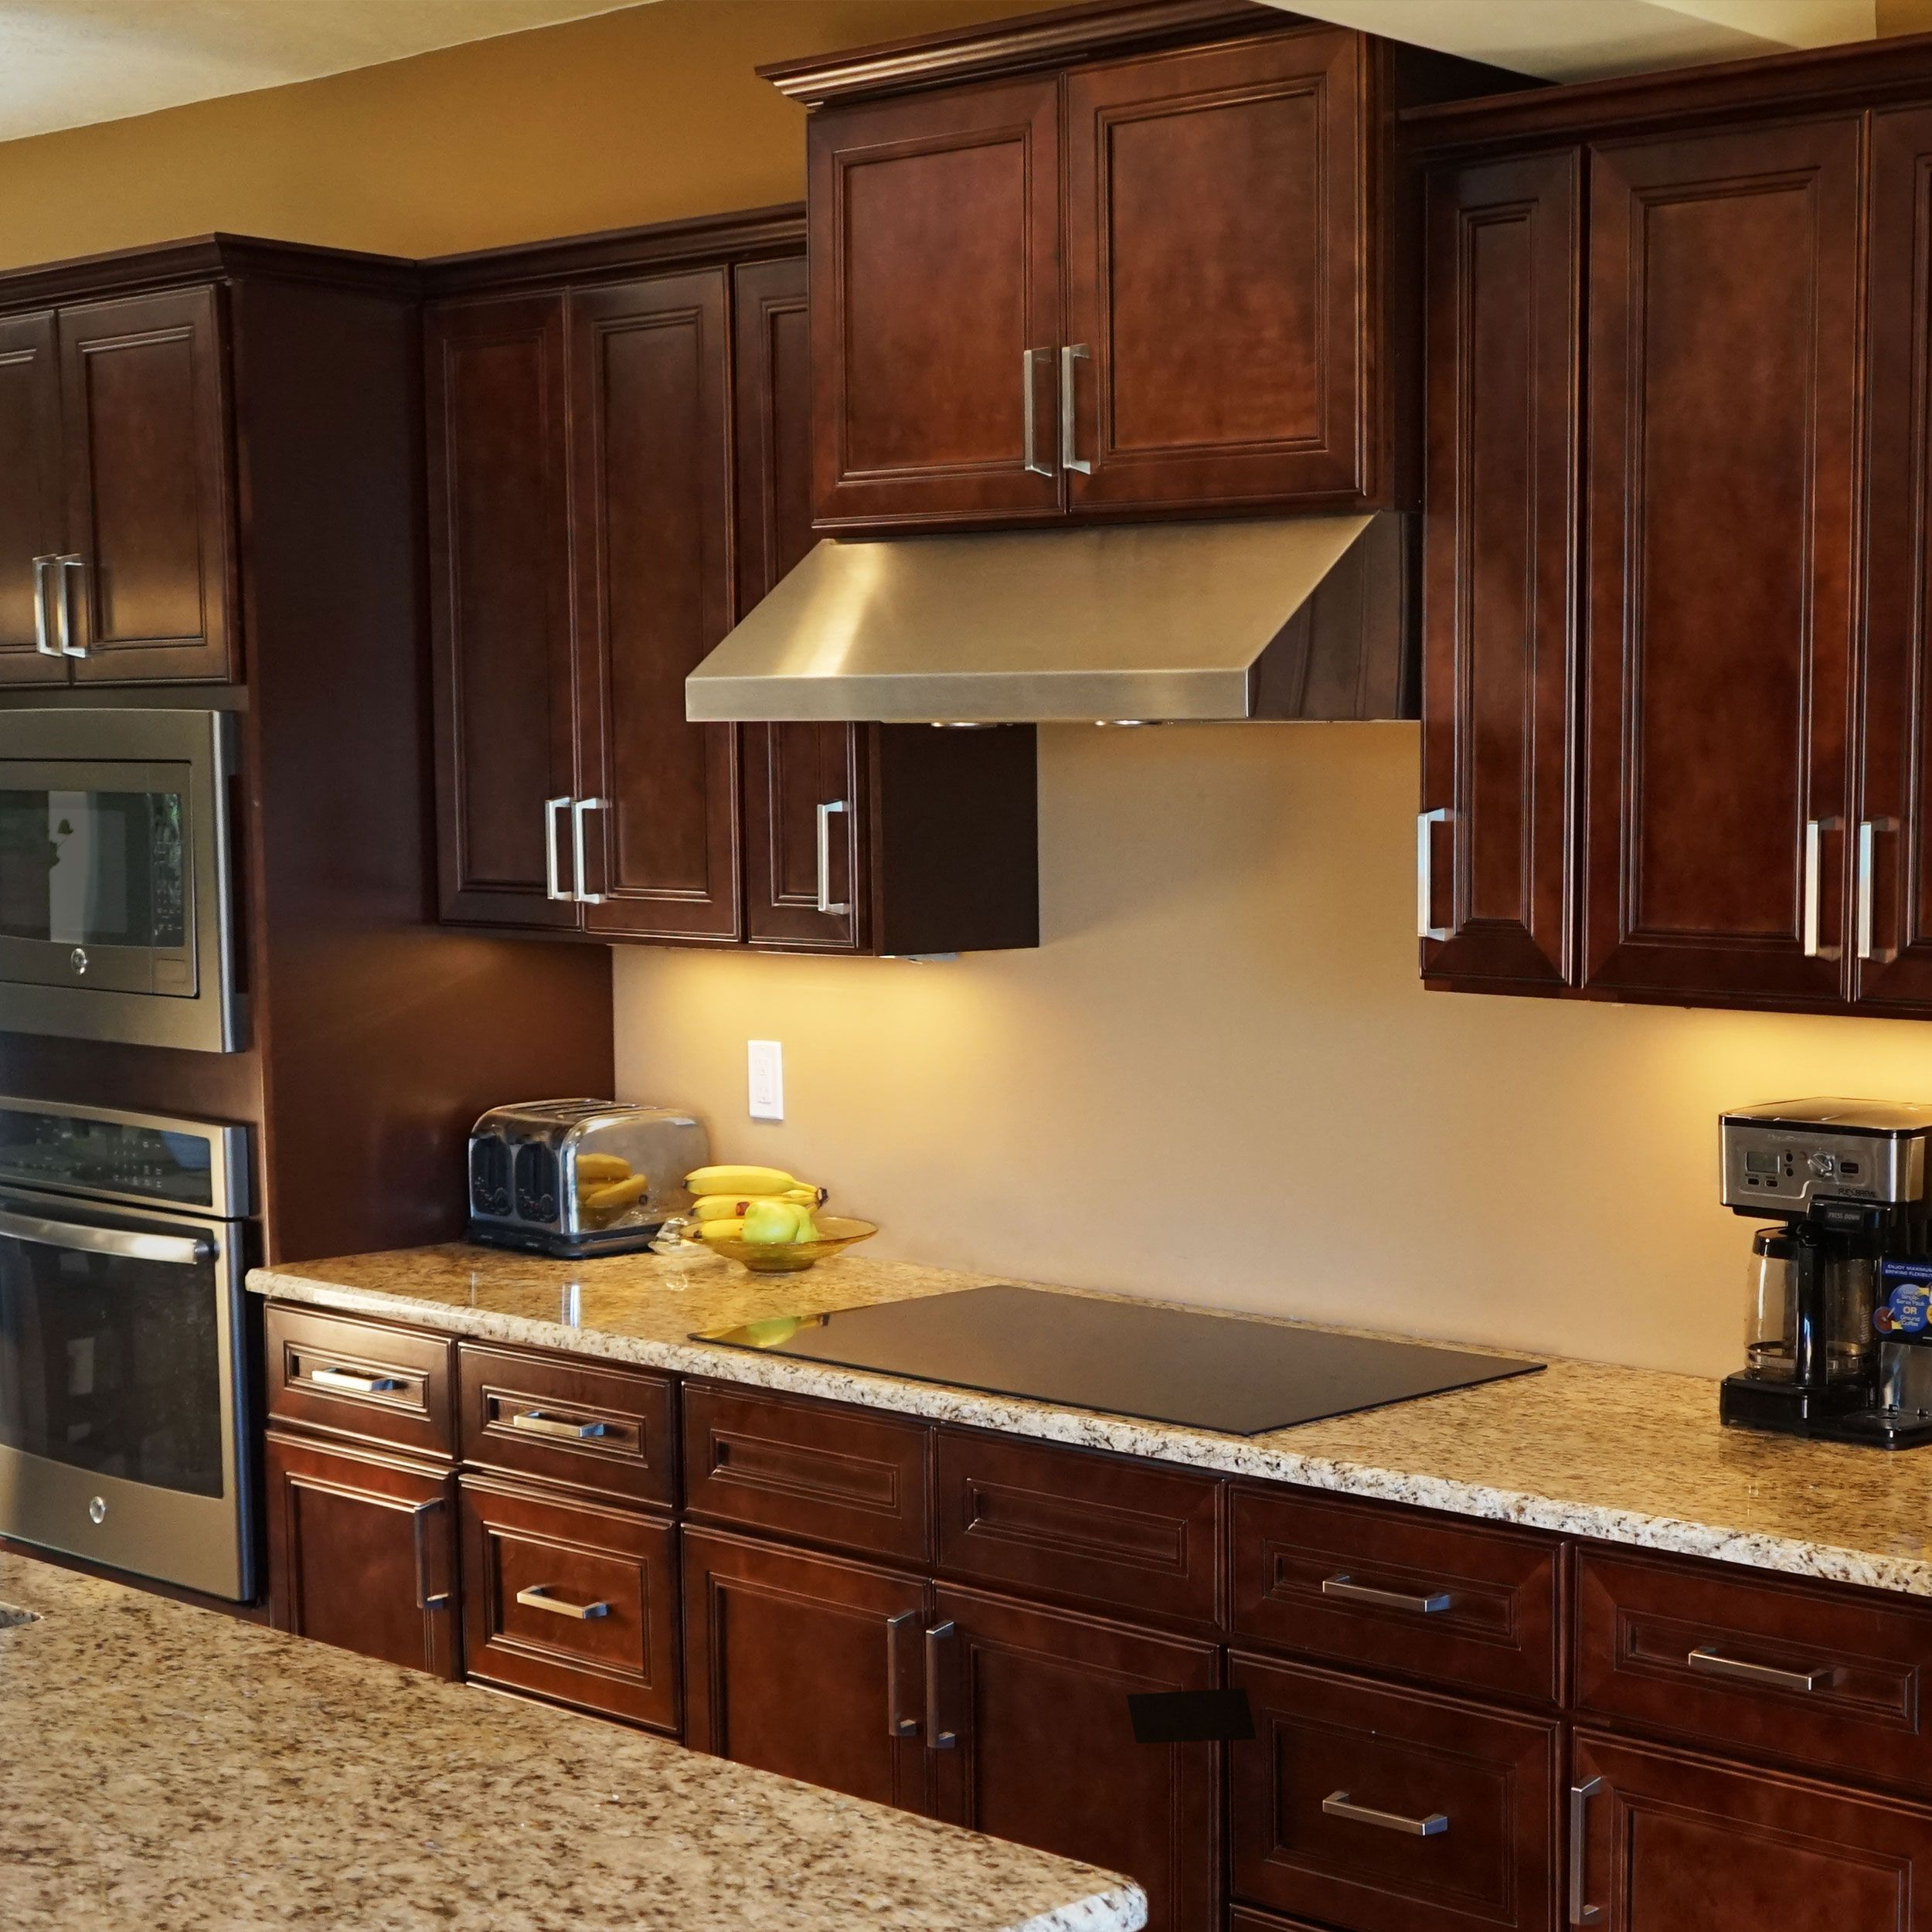 10x10 Kitchen Cabinets Bundle in Leo Saddle with Soft Close